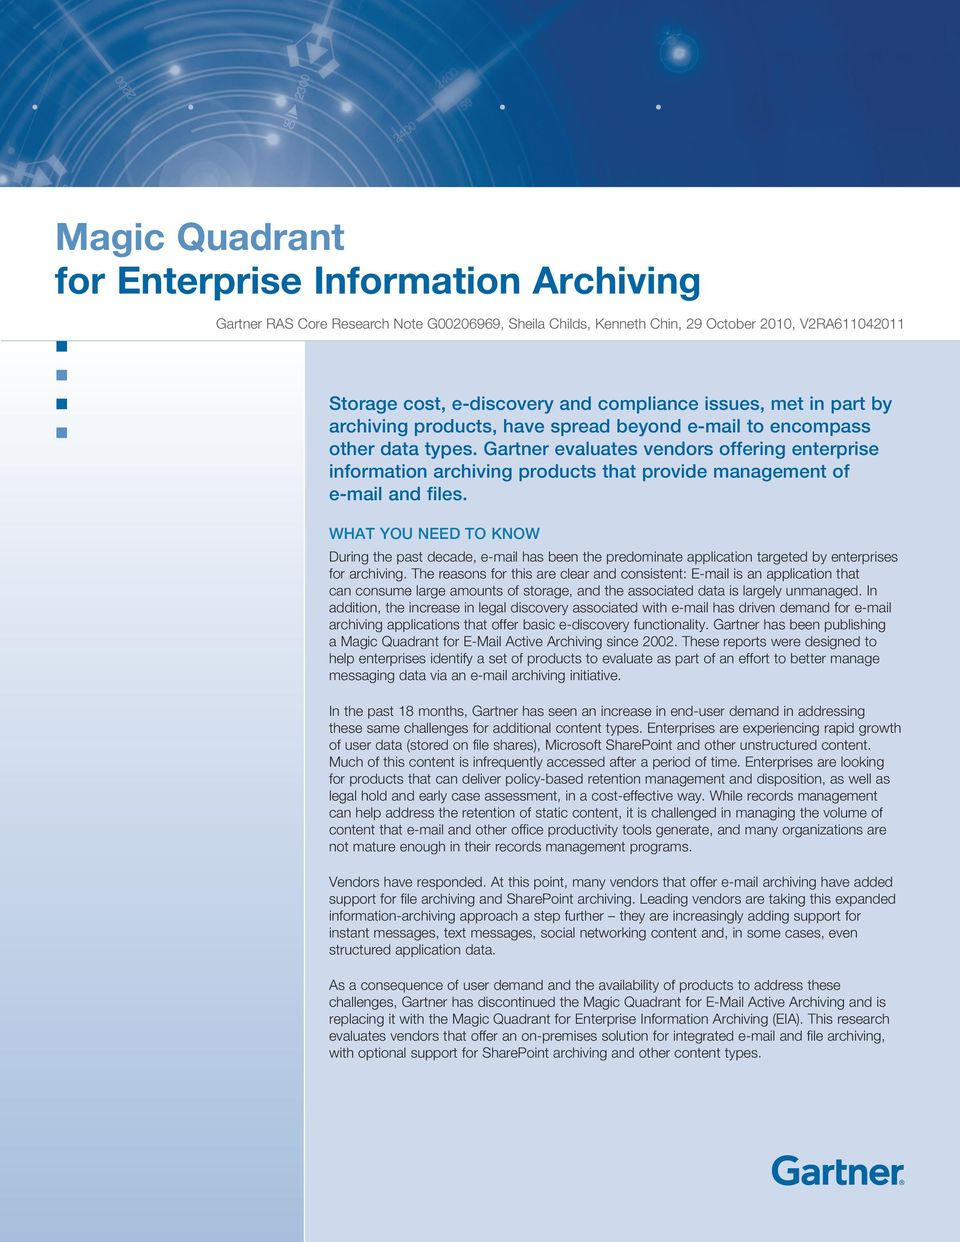 Gartner evaluates vendors offering enterprise information archiving products that provide management of e-mail and files.